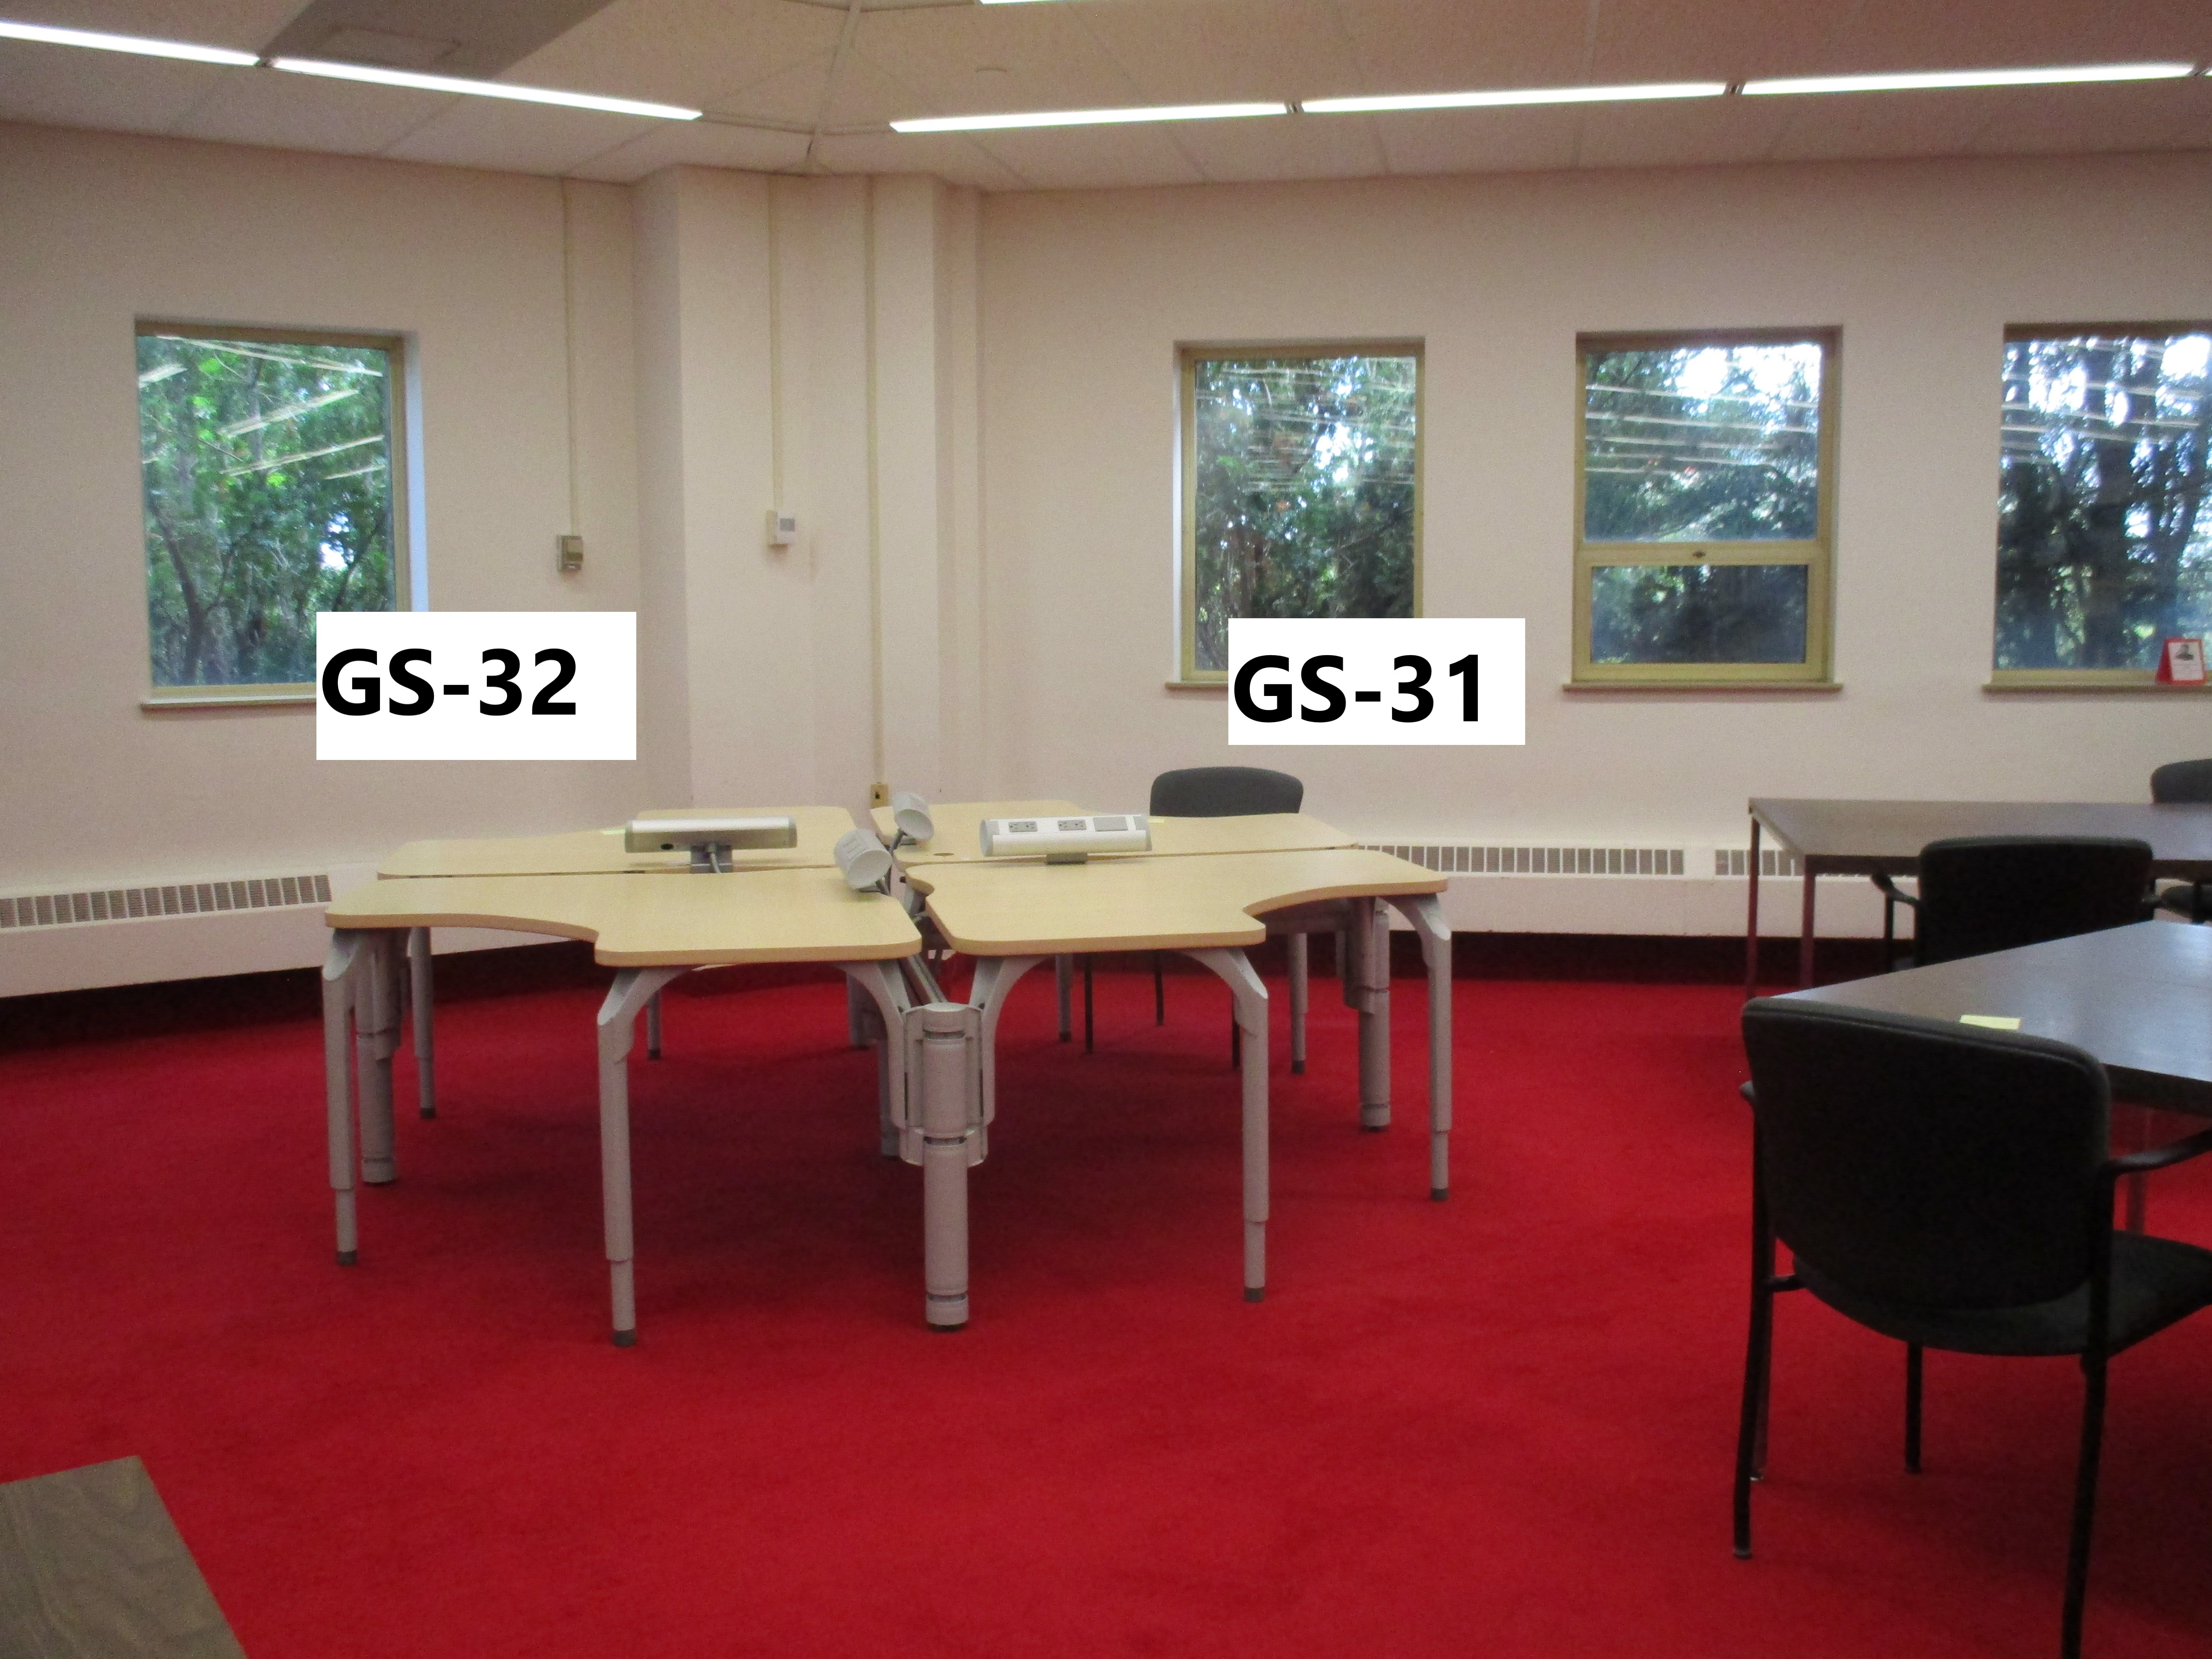 Photo of seats 32 and 31